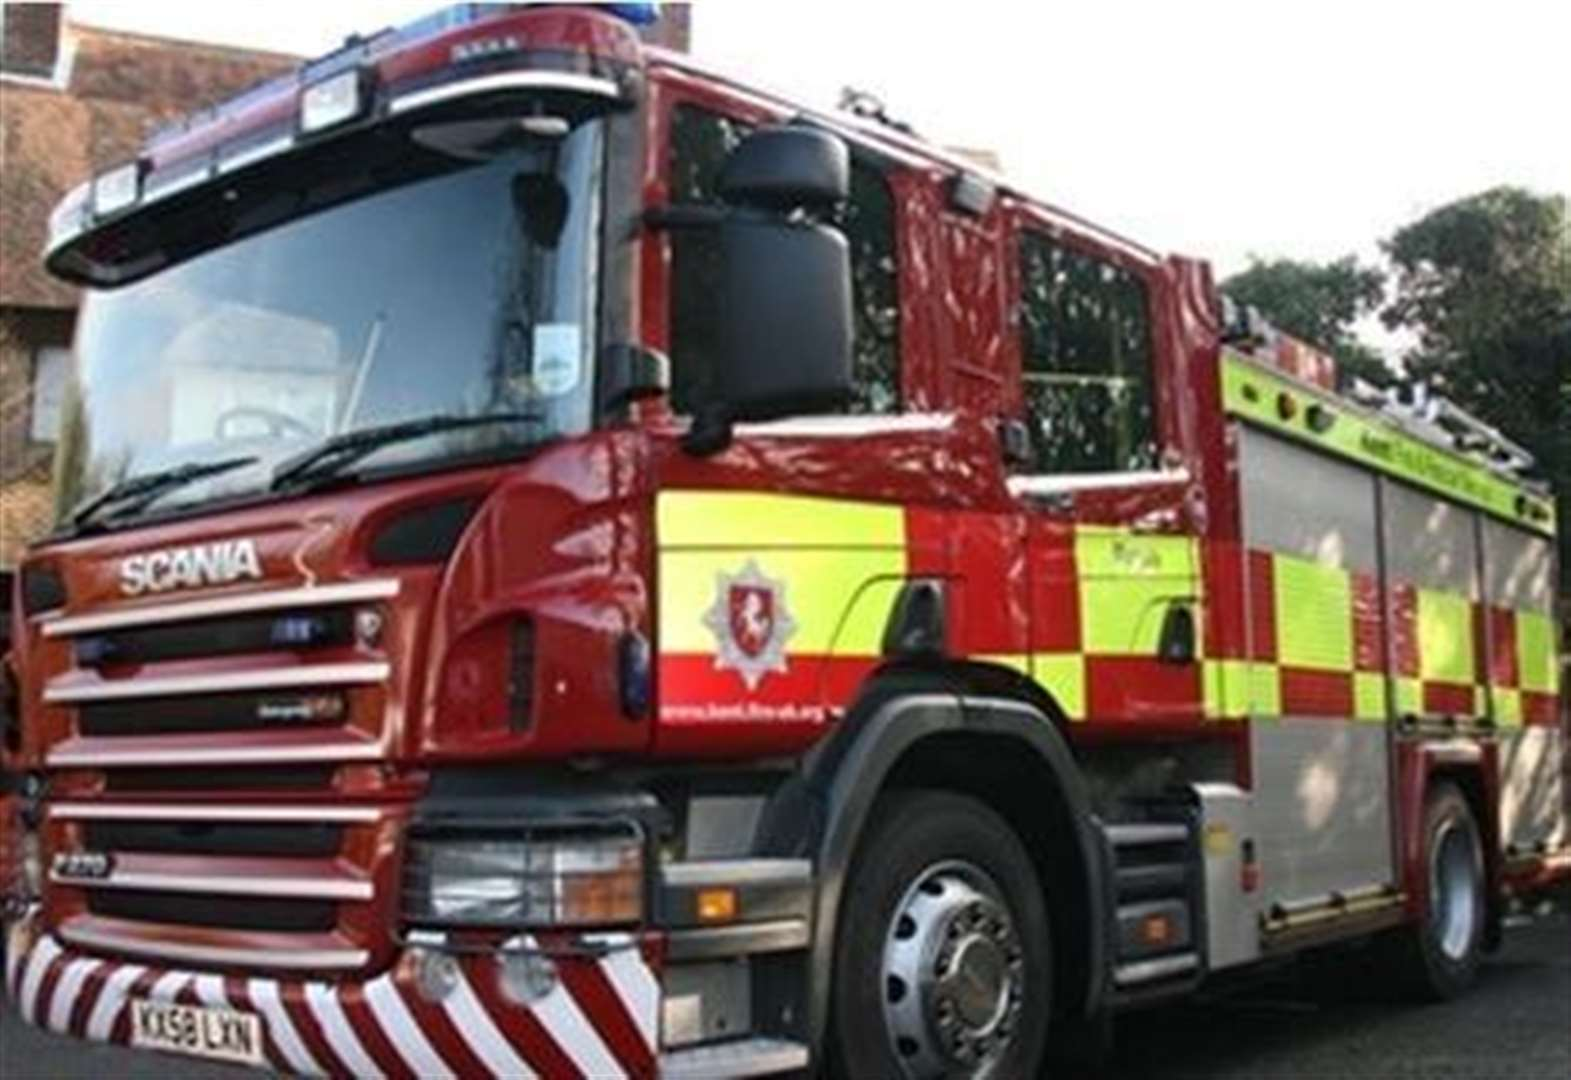 Crews urge public to take care after battling blaze